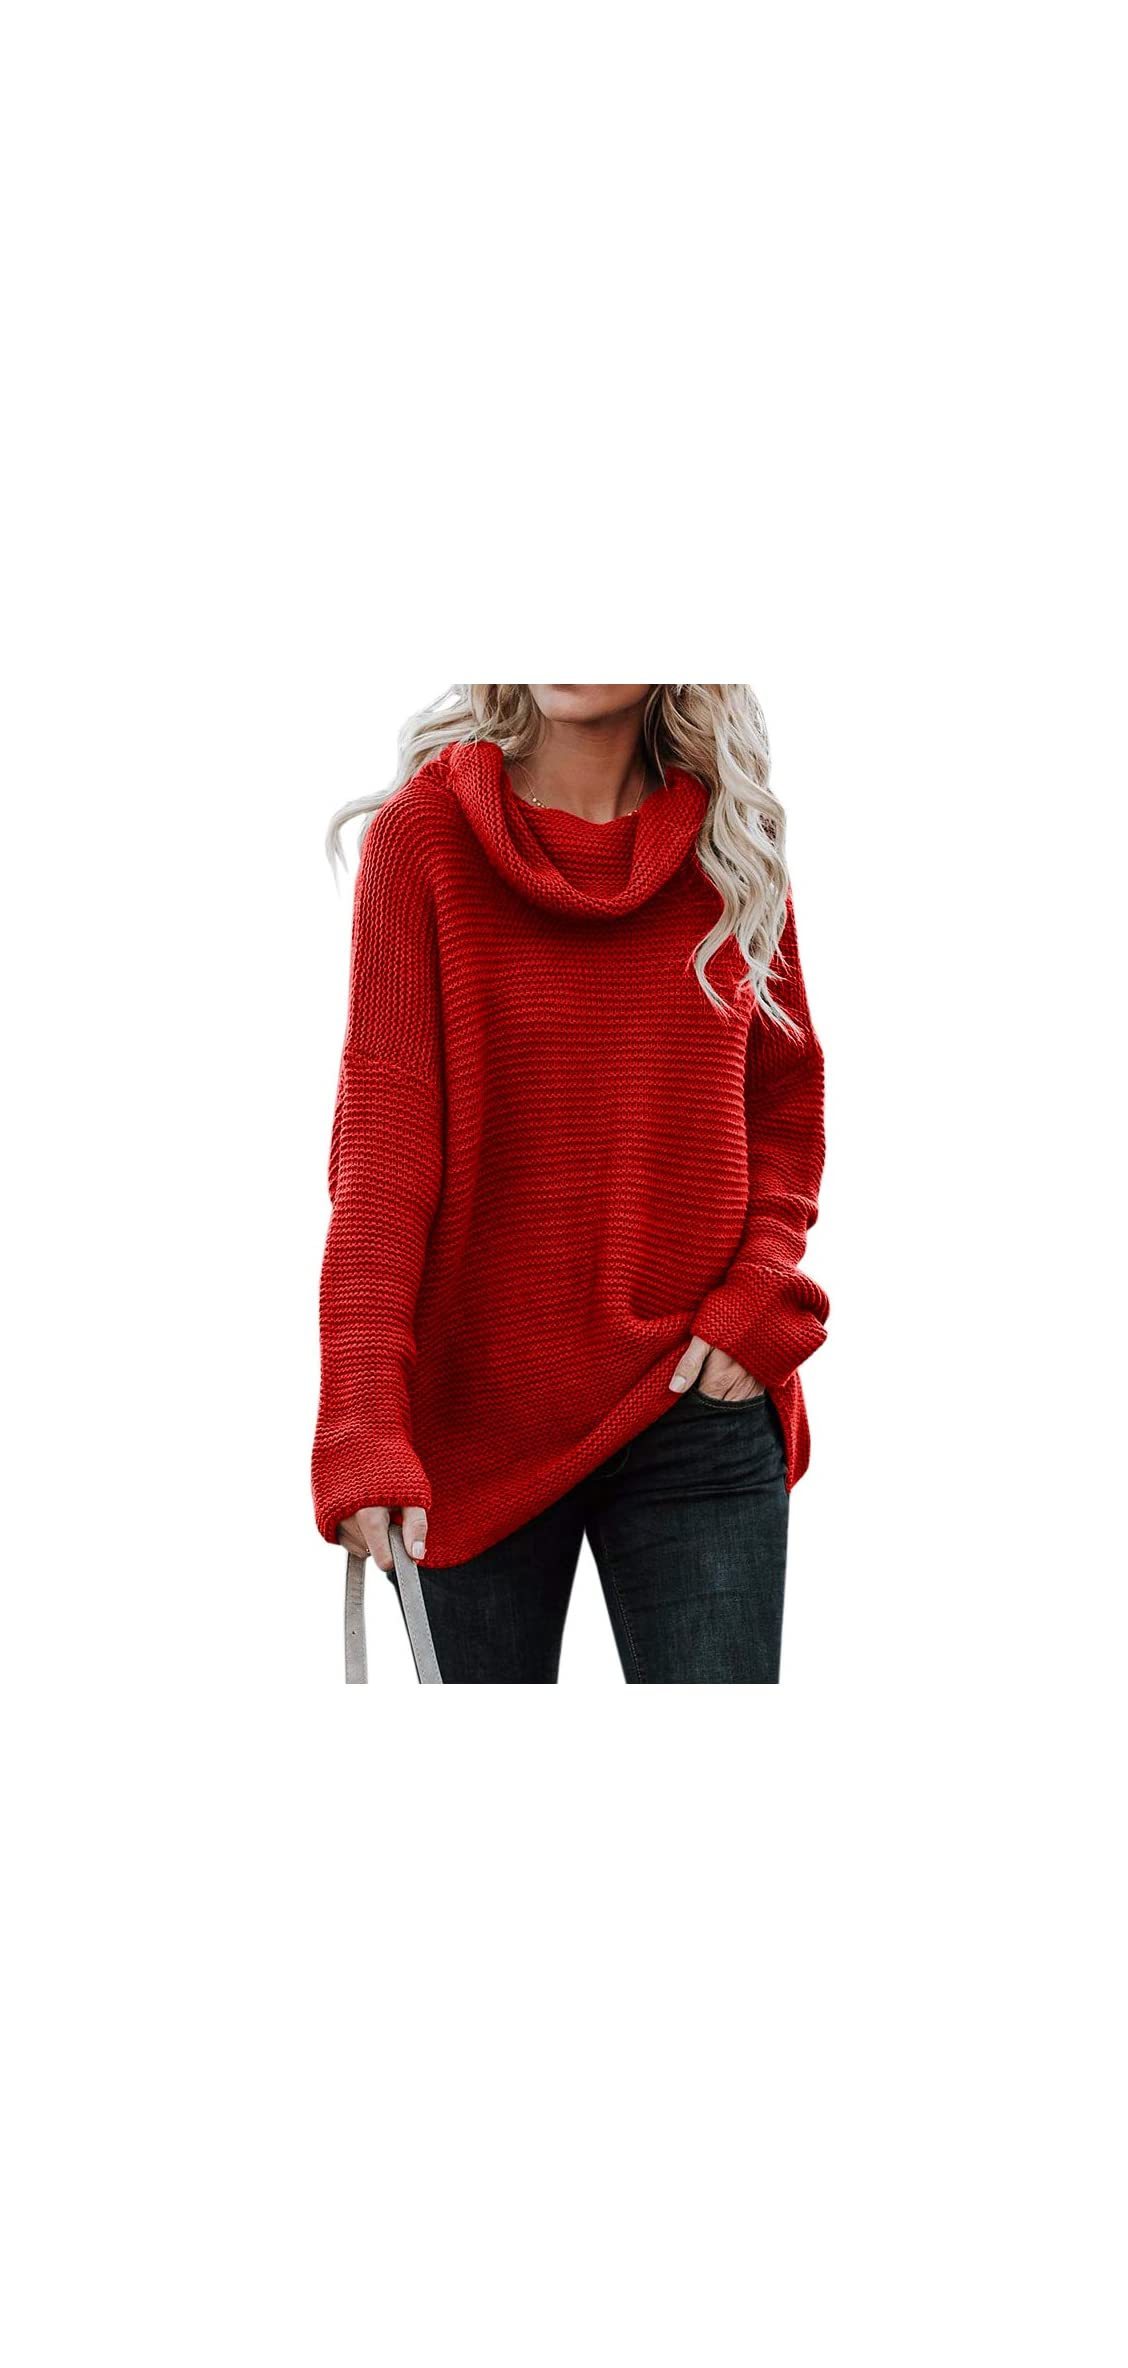 Womens Oversized Turtleneck Long Sleeve Pullover